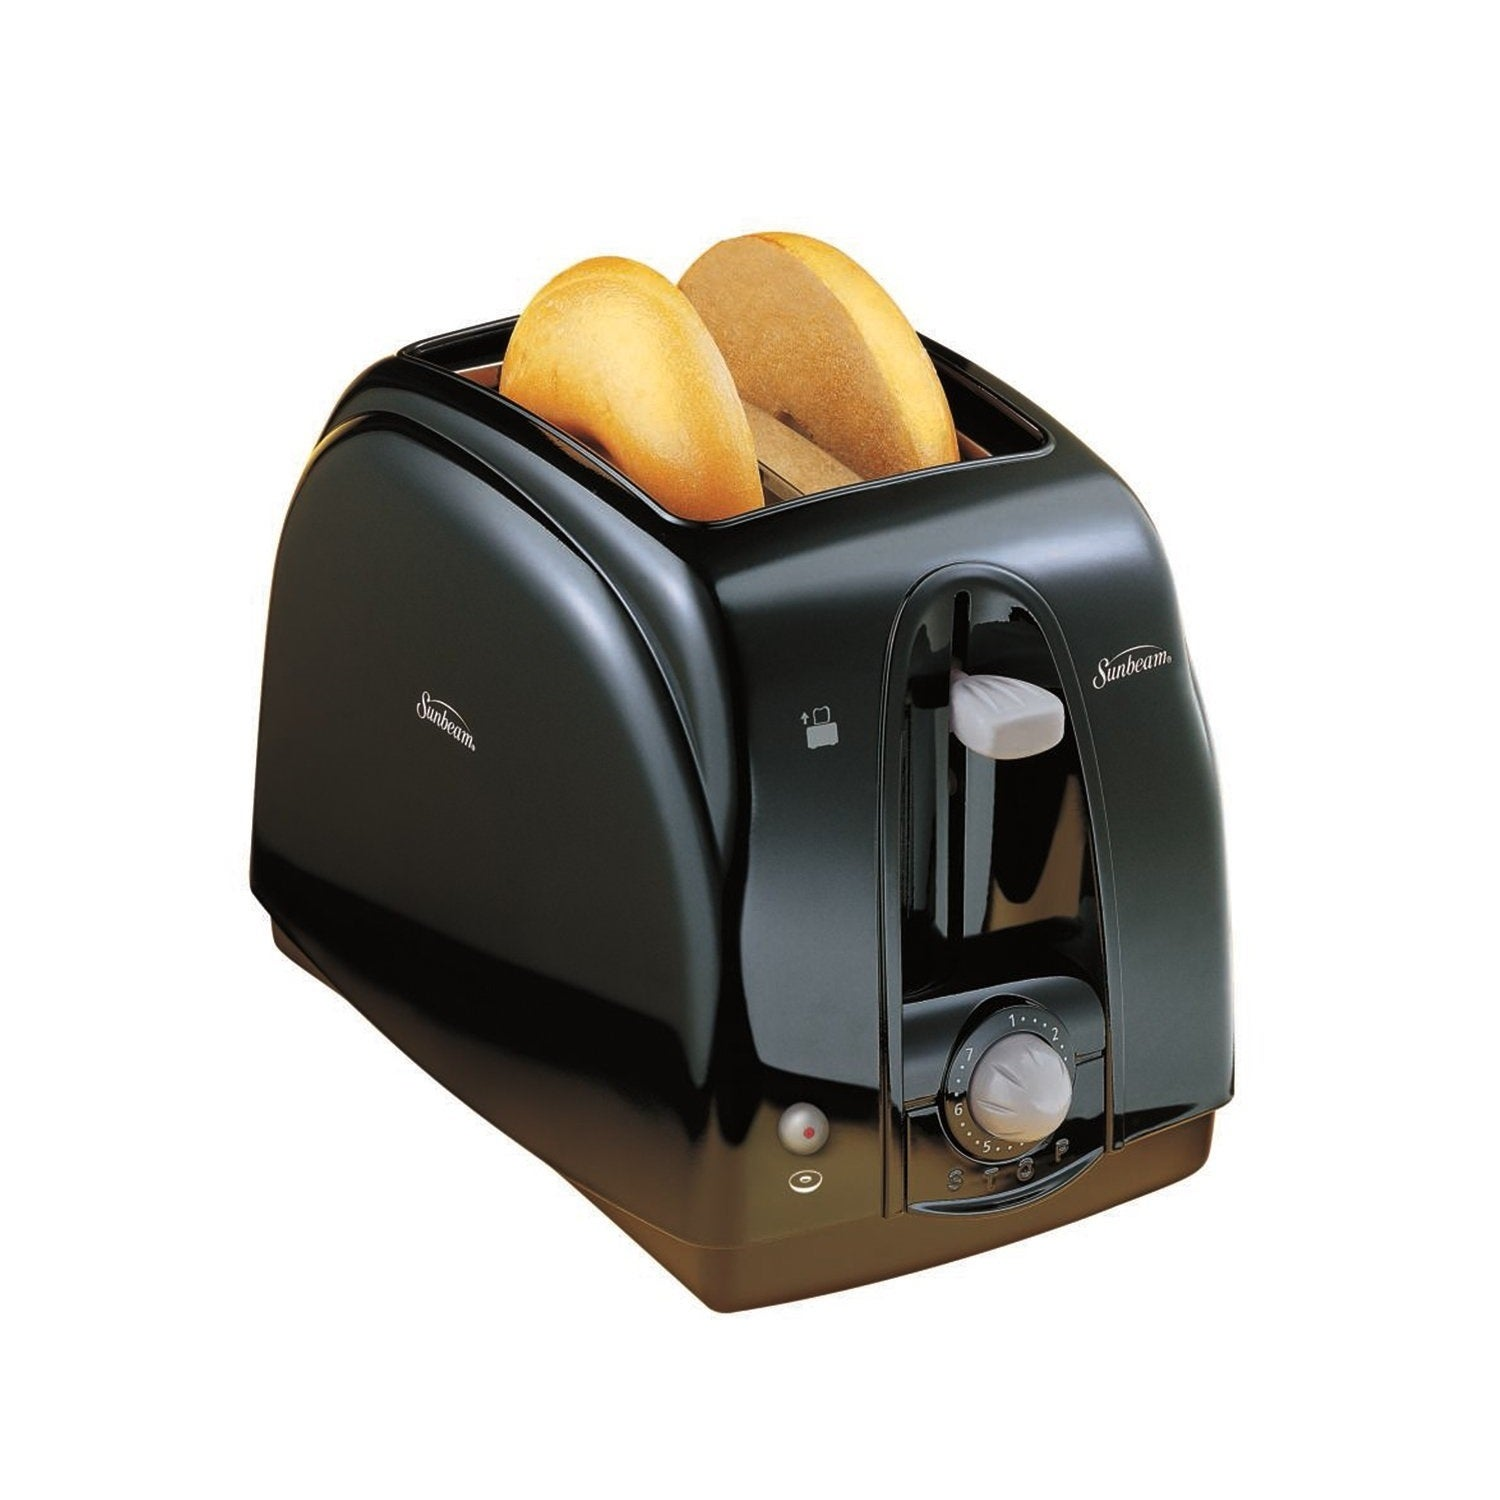 Sunbeam 2 Slice Toaster,Black